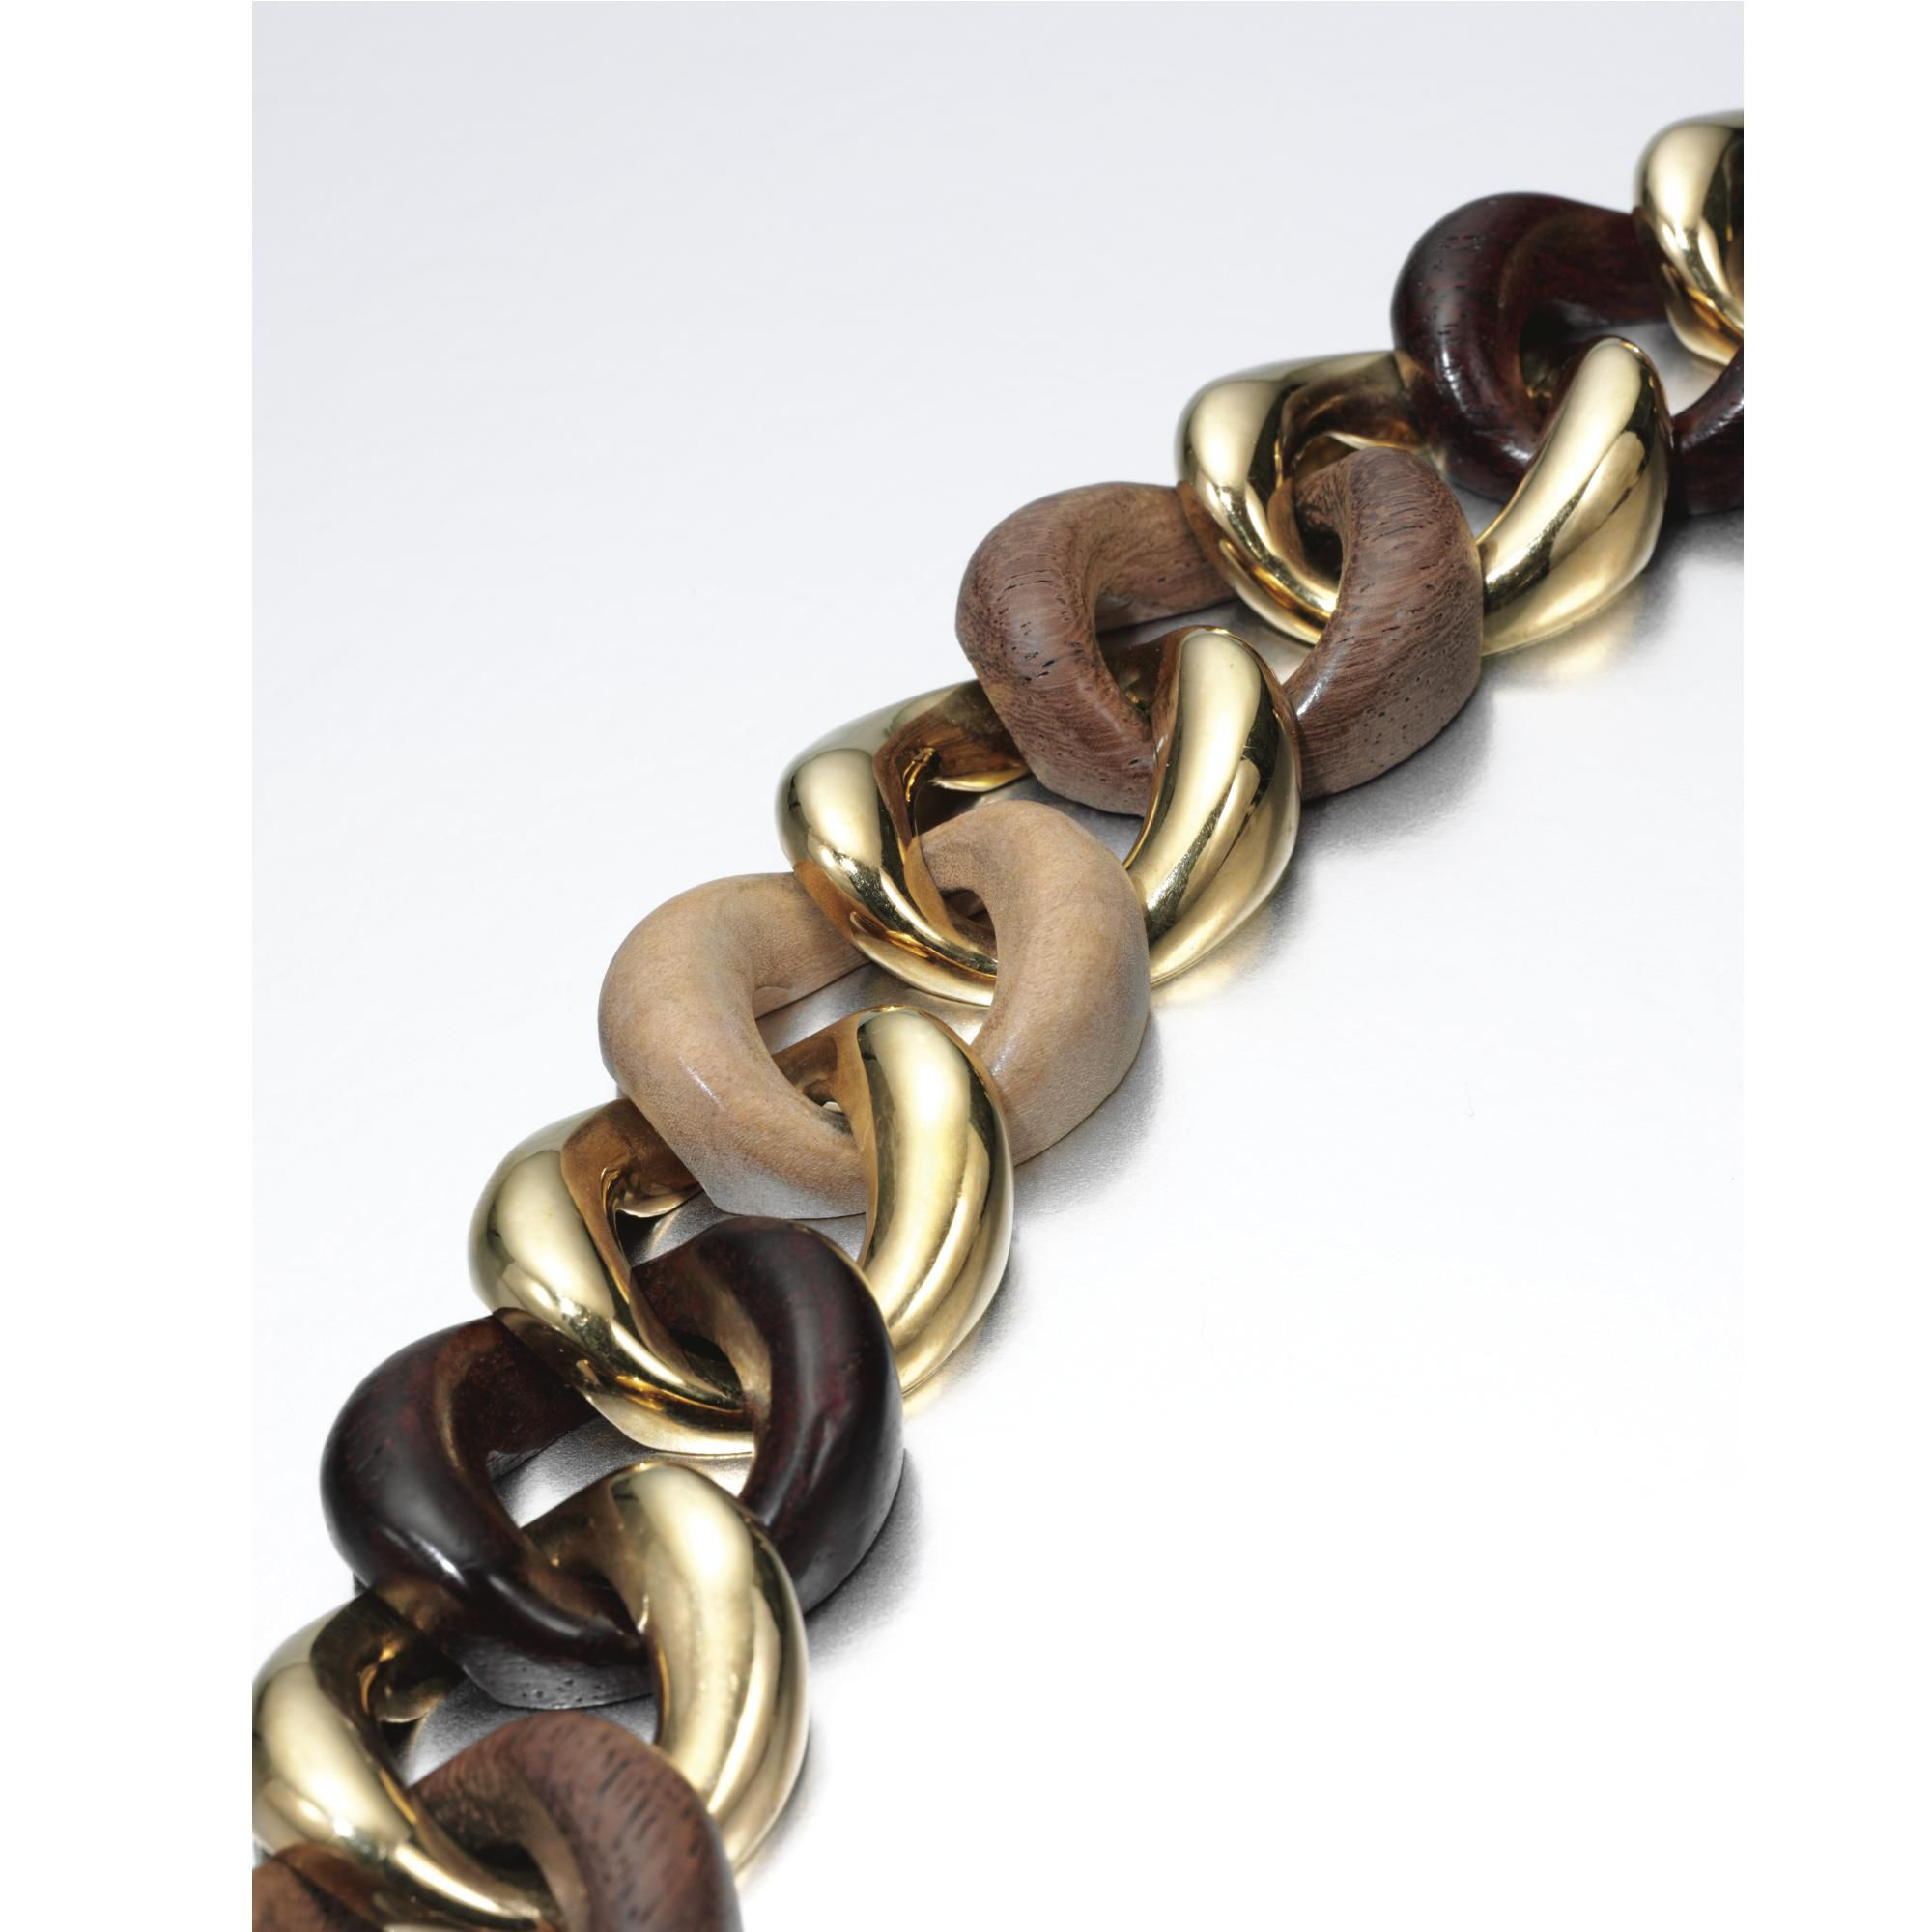 WOOD AND YELLOW GOLD LINK BRACELET, SEAMAN SCHEPPS Designed as a line of interlocking curb links of polished yellow gold and wood, signed Seaman Schepps and numbered, maker's marks. length approximately 195mm,